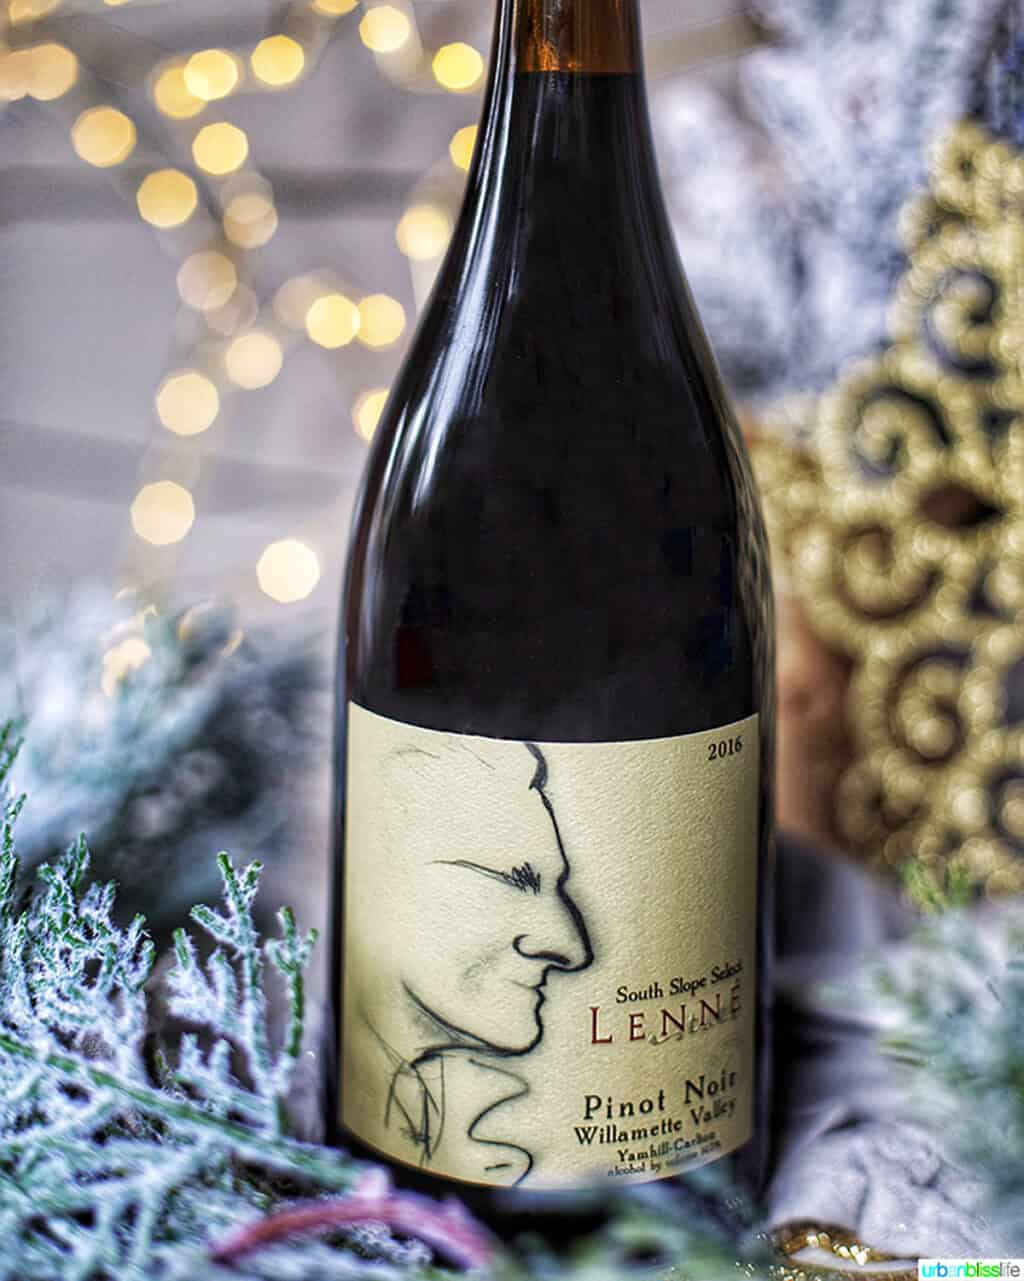 Lenne Estate Pinot Noir wine bottle in holiday setting